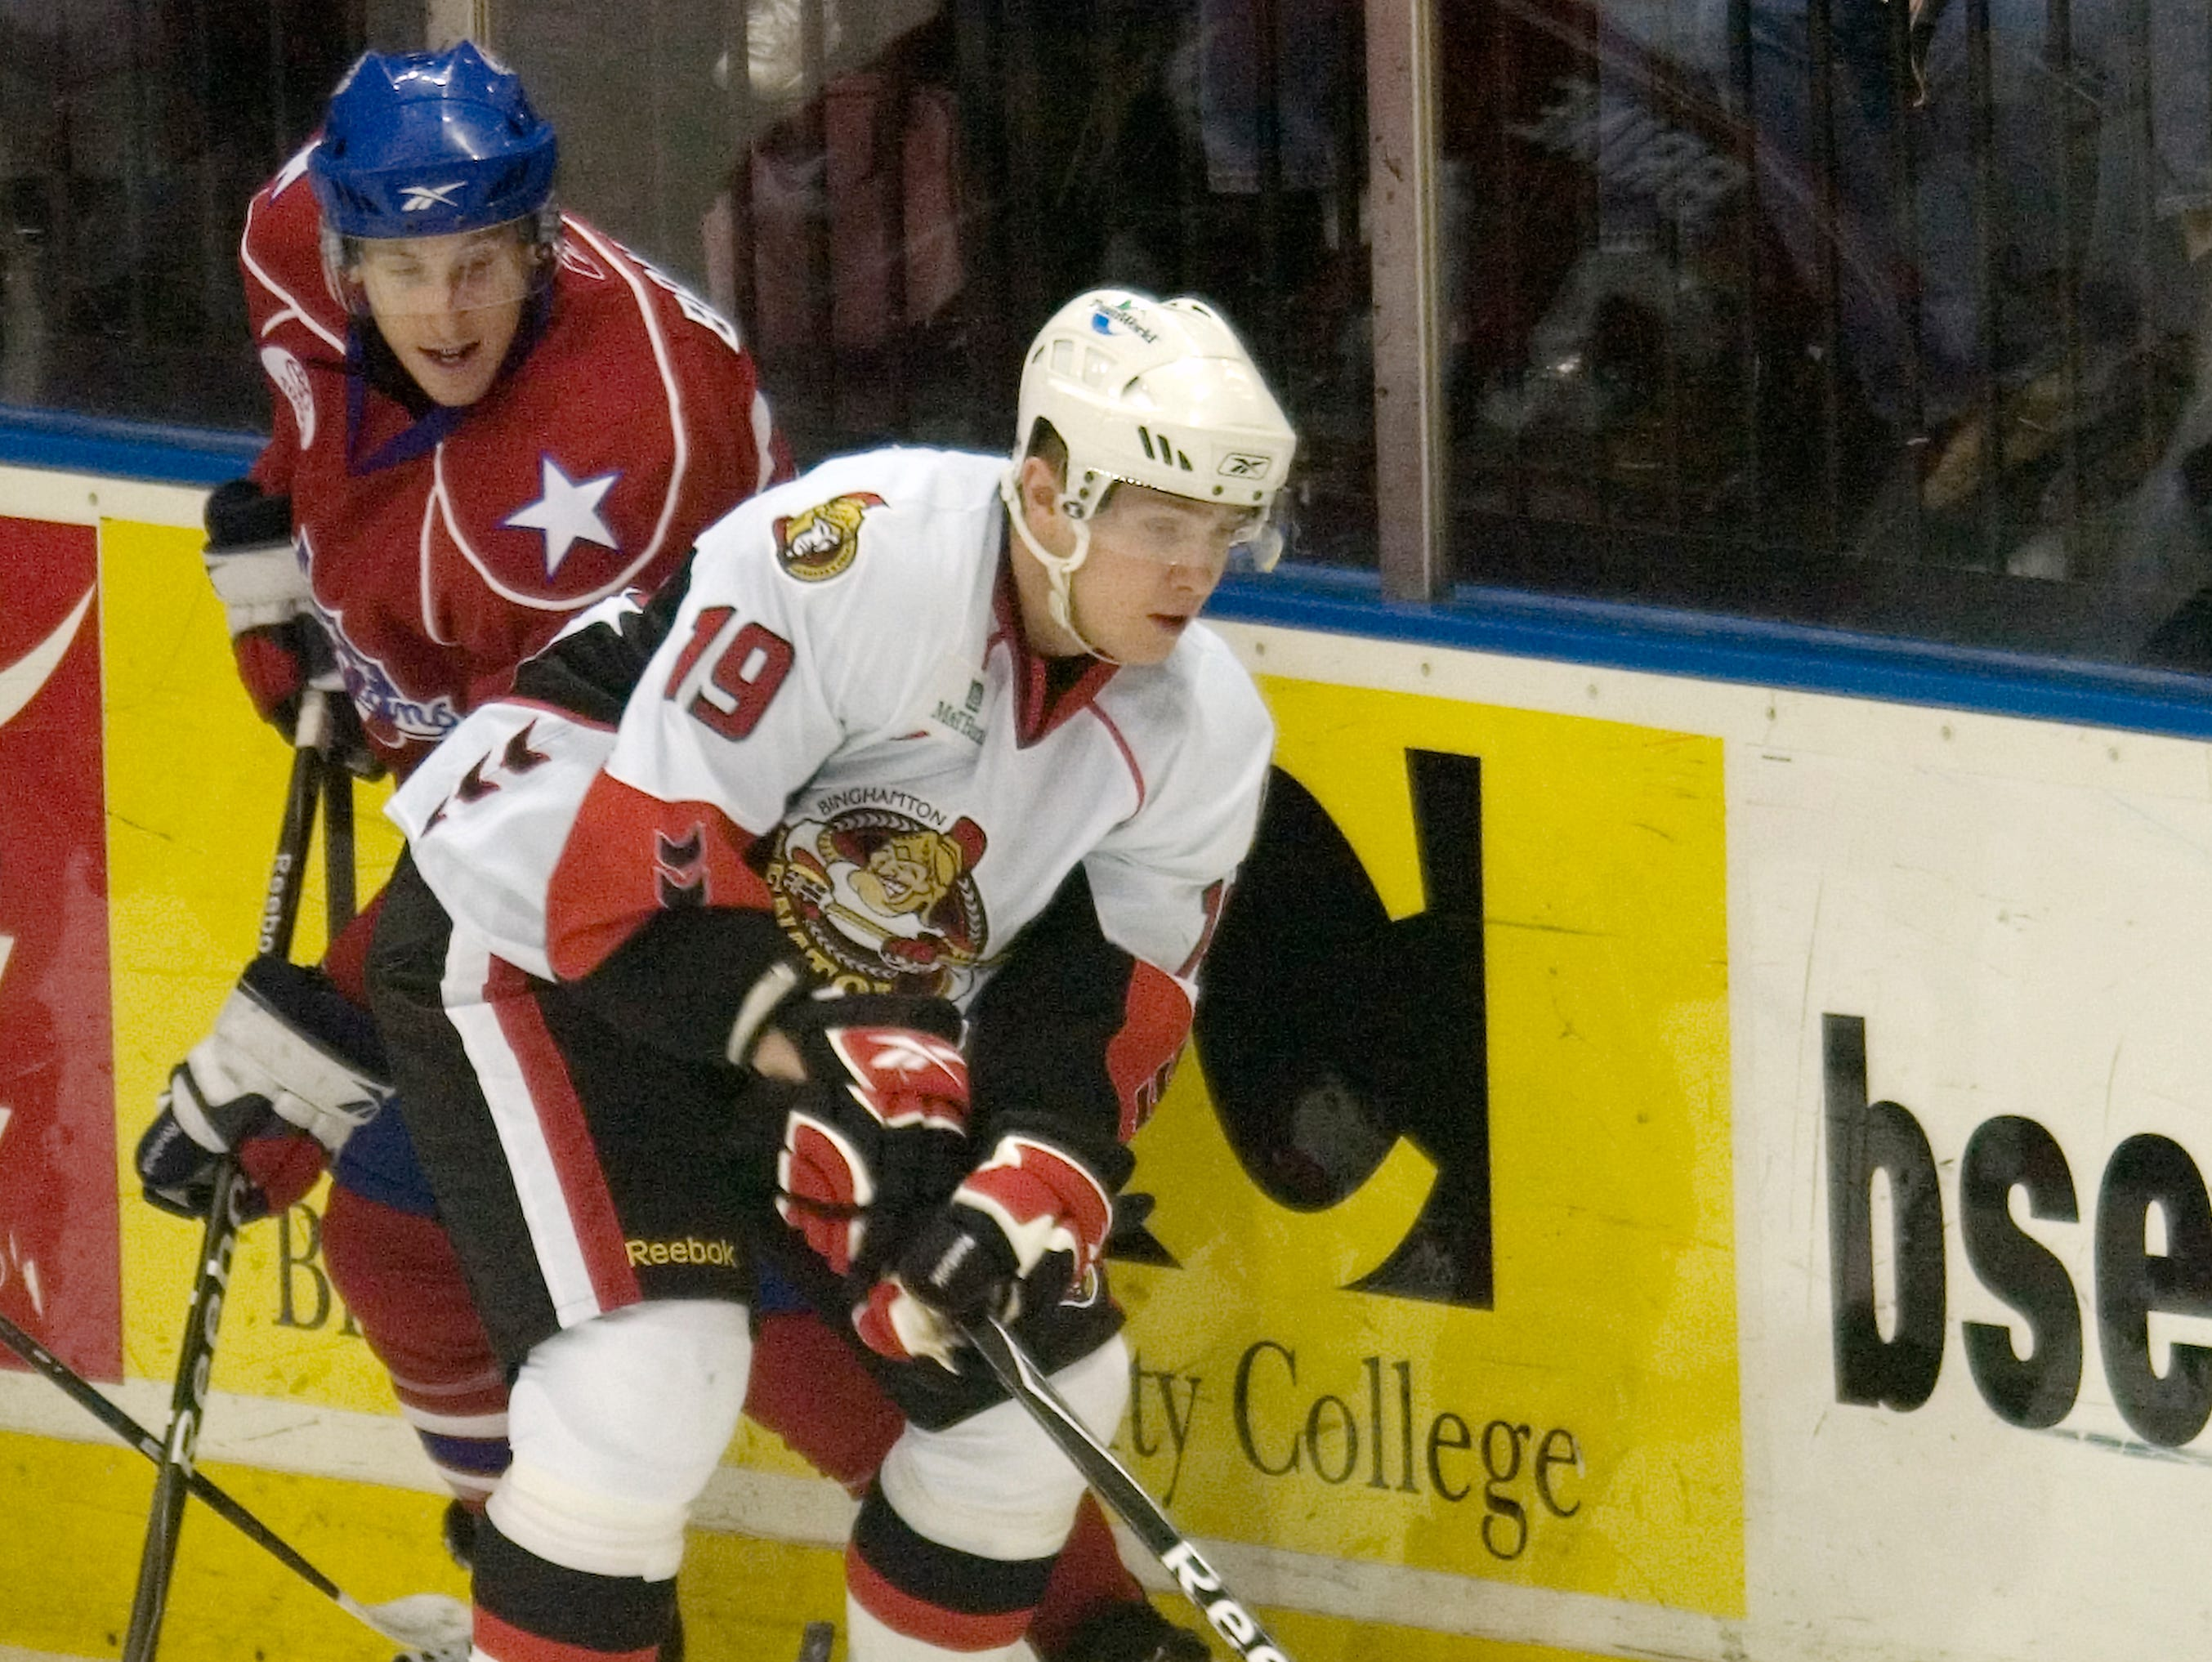 2009: Binghamton Senators' Zack Smith, right, is defended by Rochester Americans' David Brine in the first period of Saturday's game at Broome County Veterans Memorial Arena.